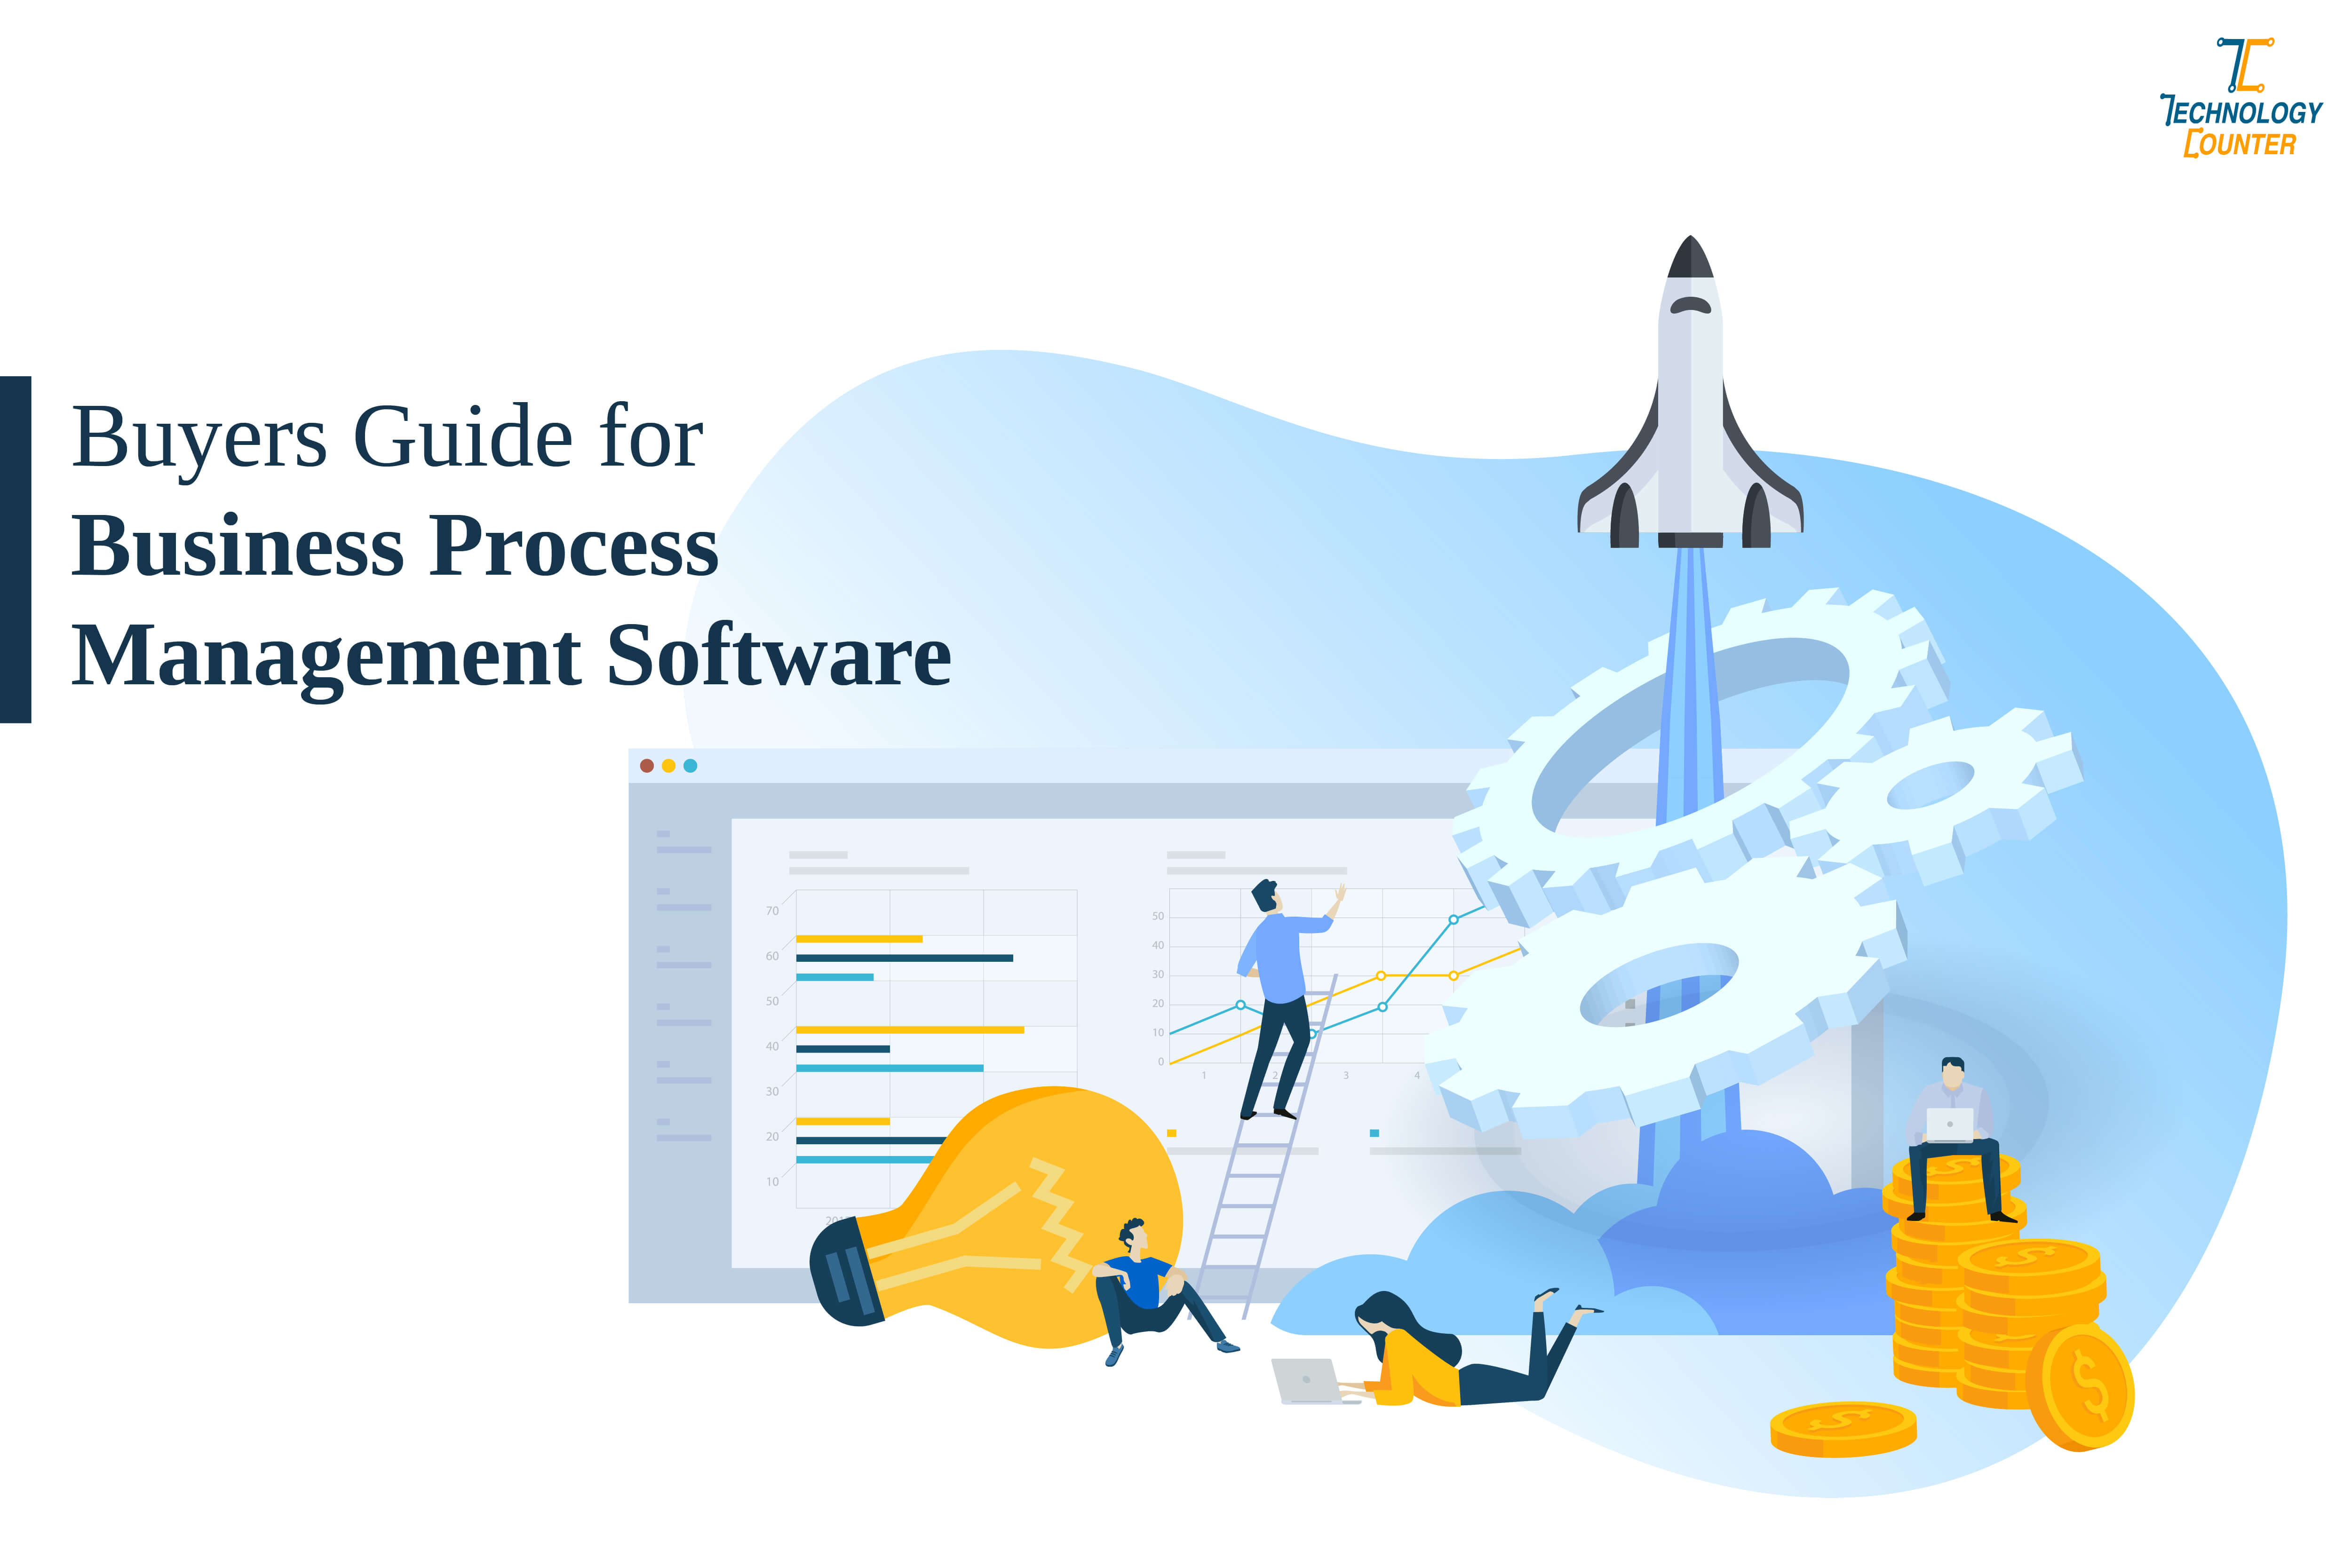 Buyers Guide for Business Process Management